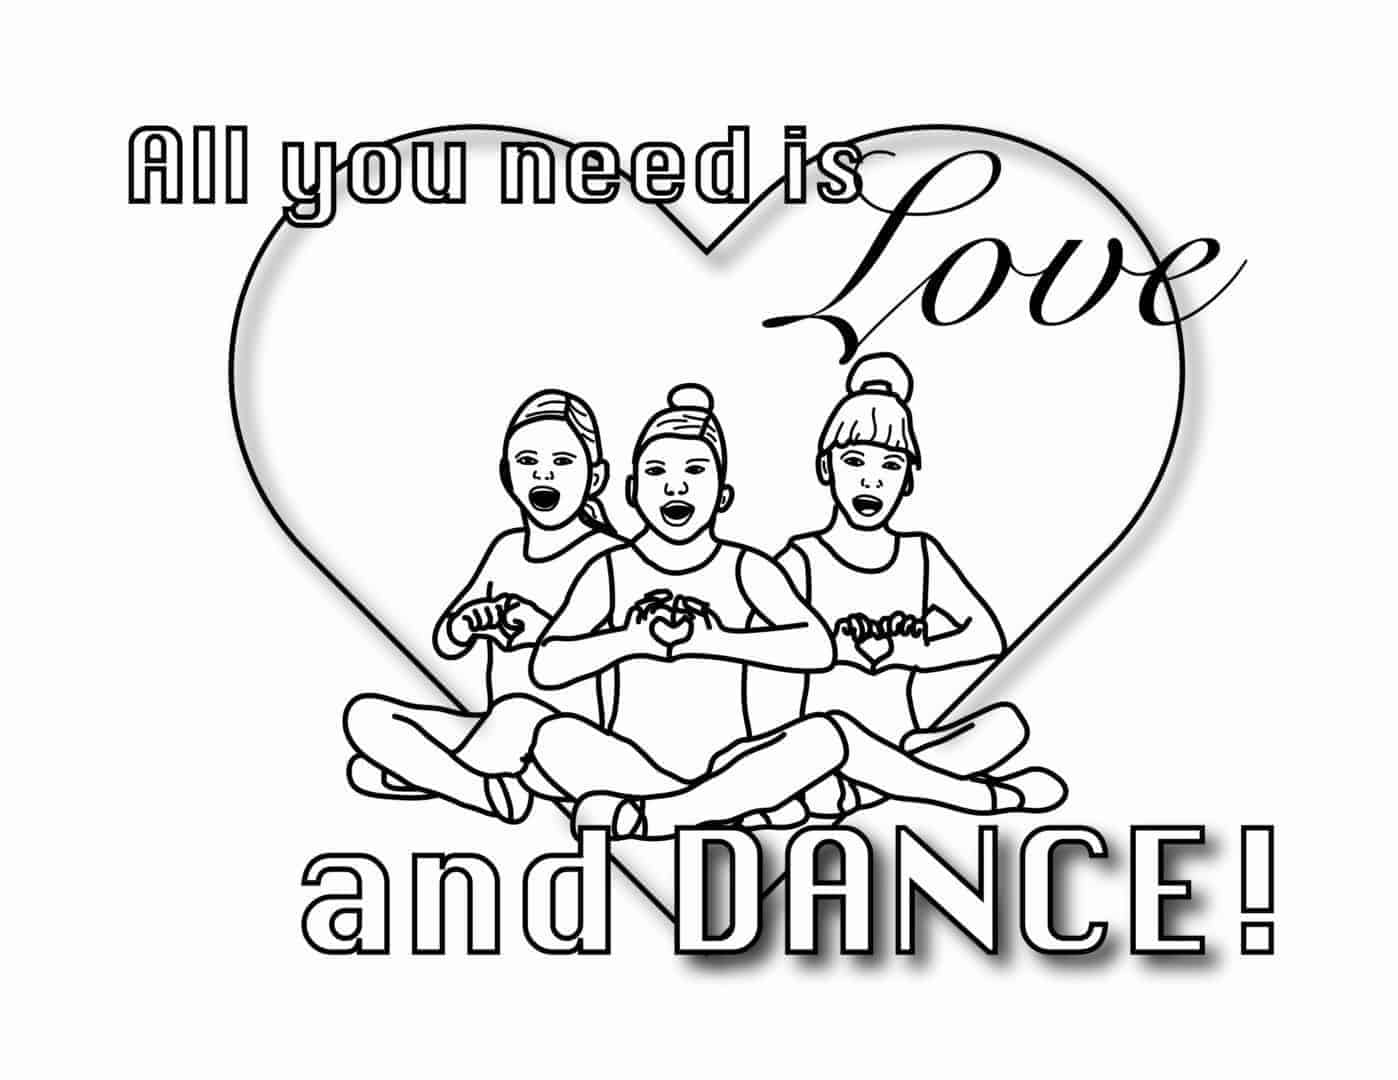 All you need is love and dance-01